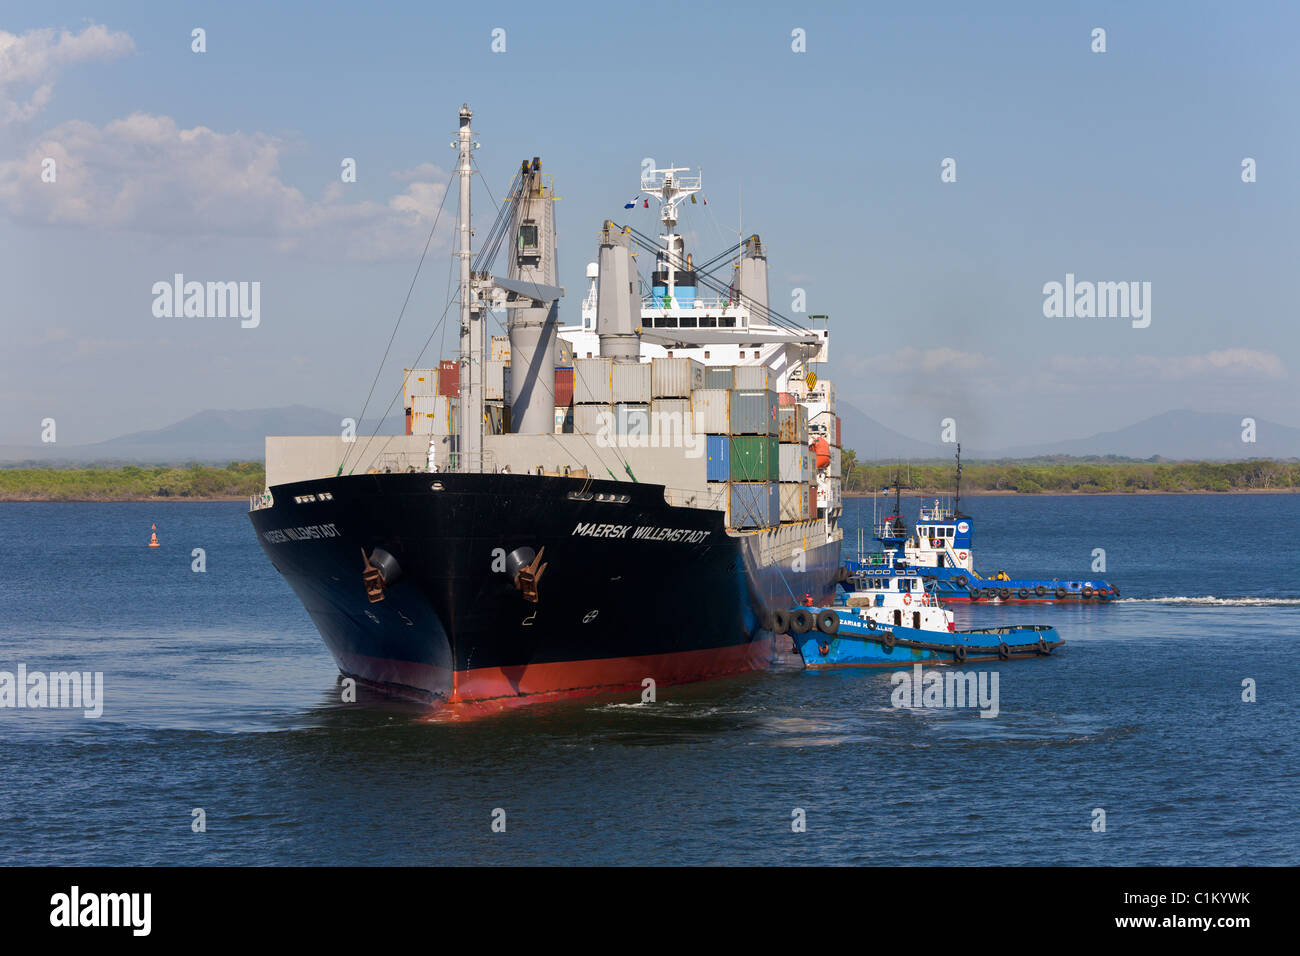 Container ship with two tugs arriving at the Port of Corinto, Nicaragua - Stock Image